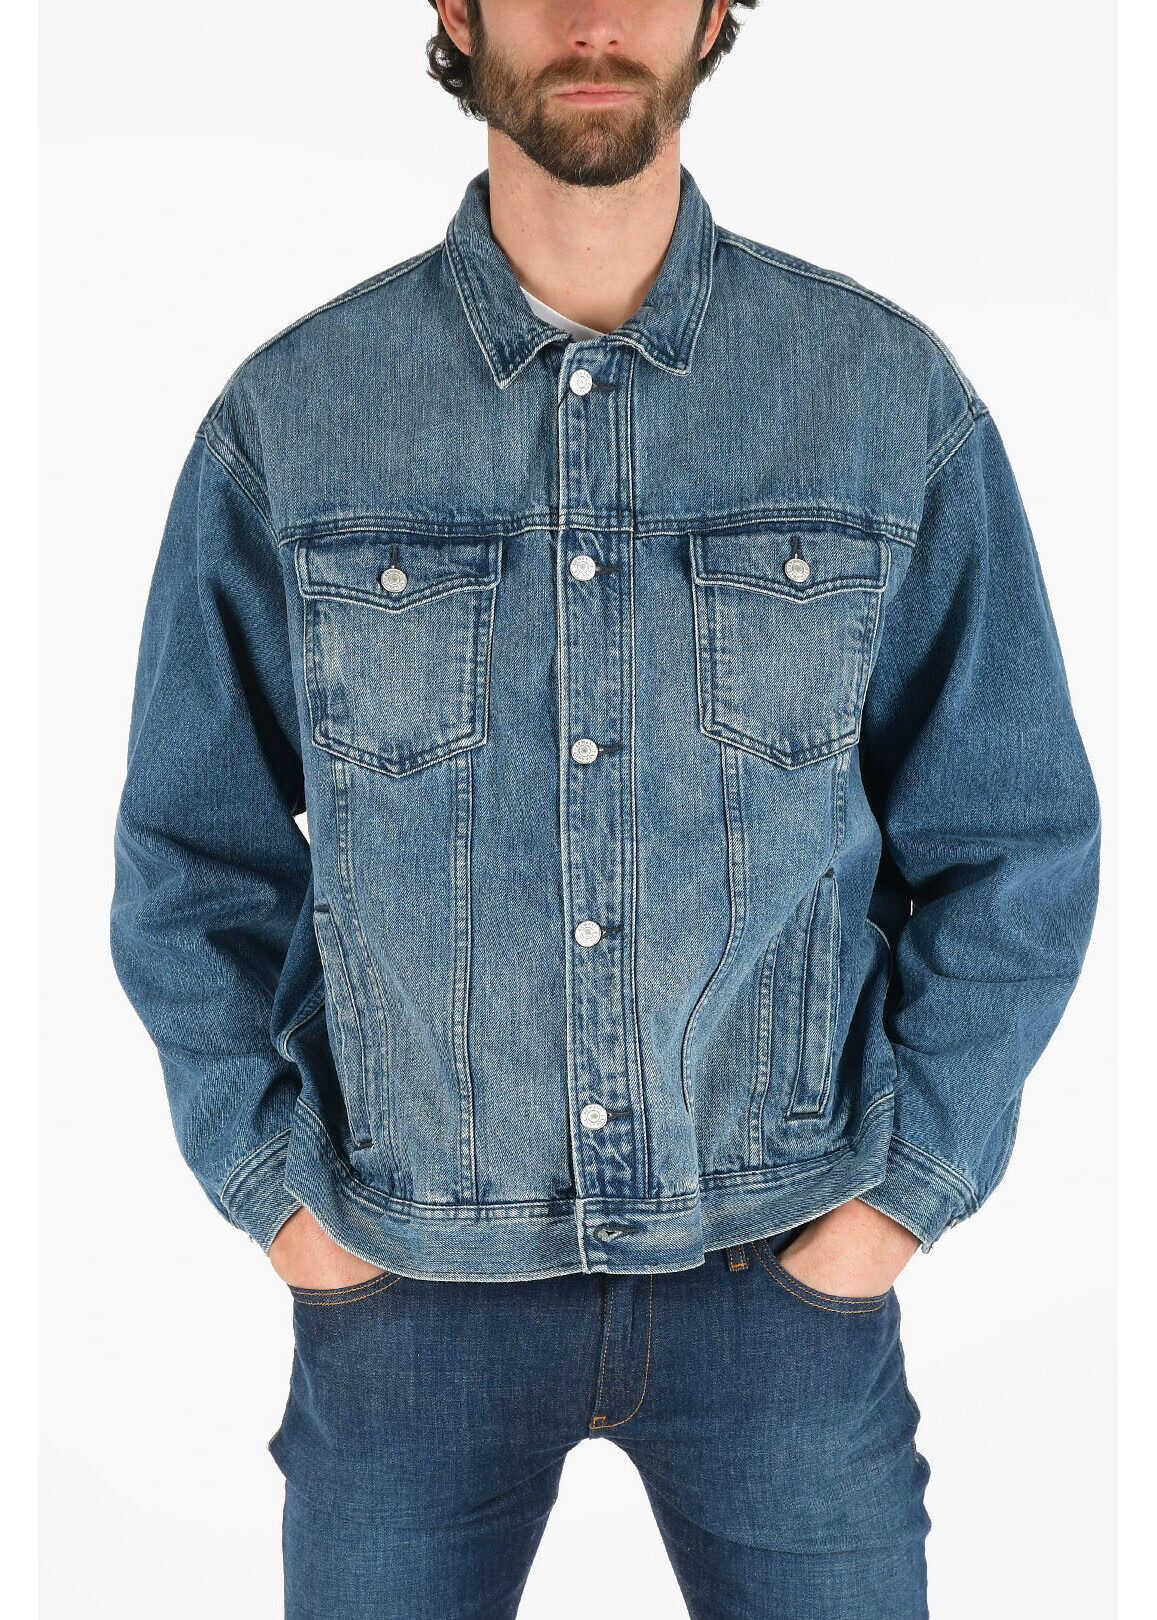 Armani ARMANI EXCHANGE Stonewashed Denim Jacket BLUE imagine